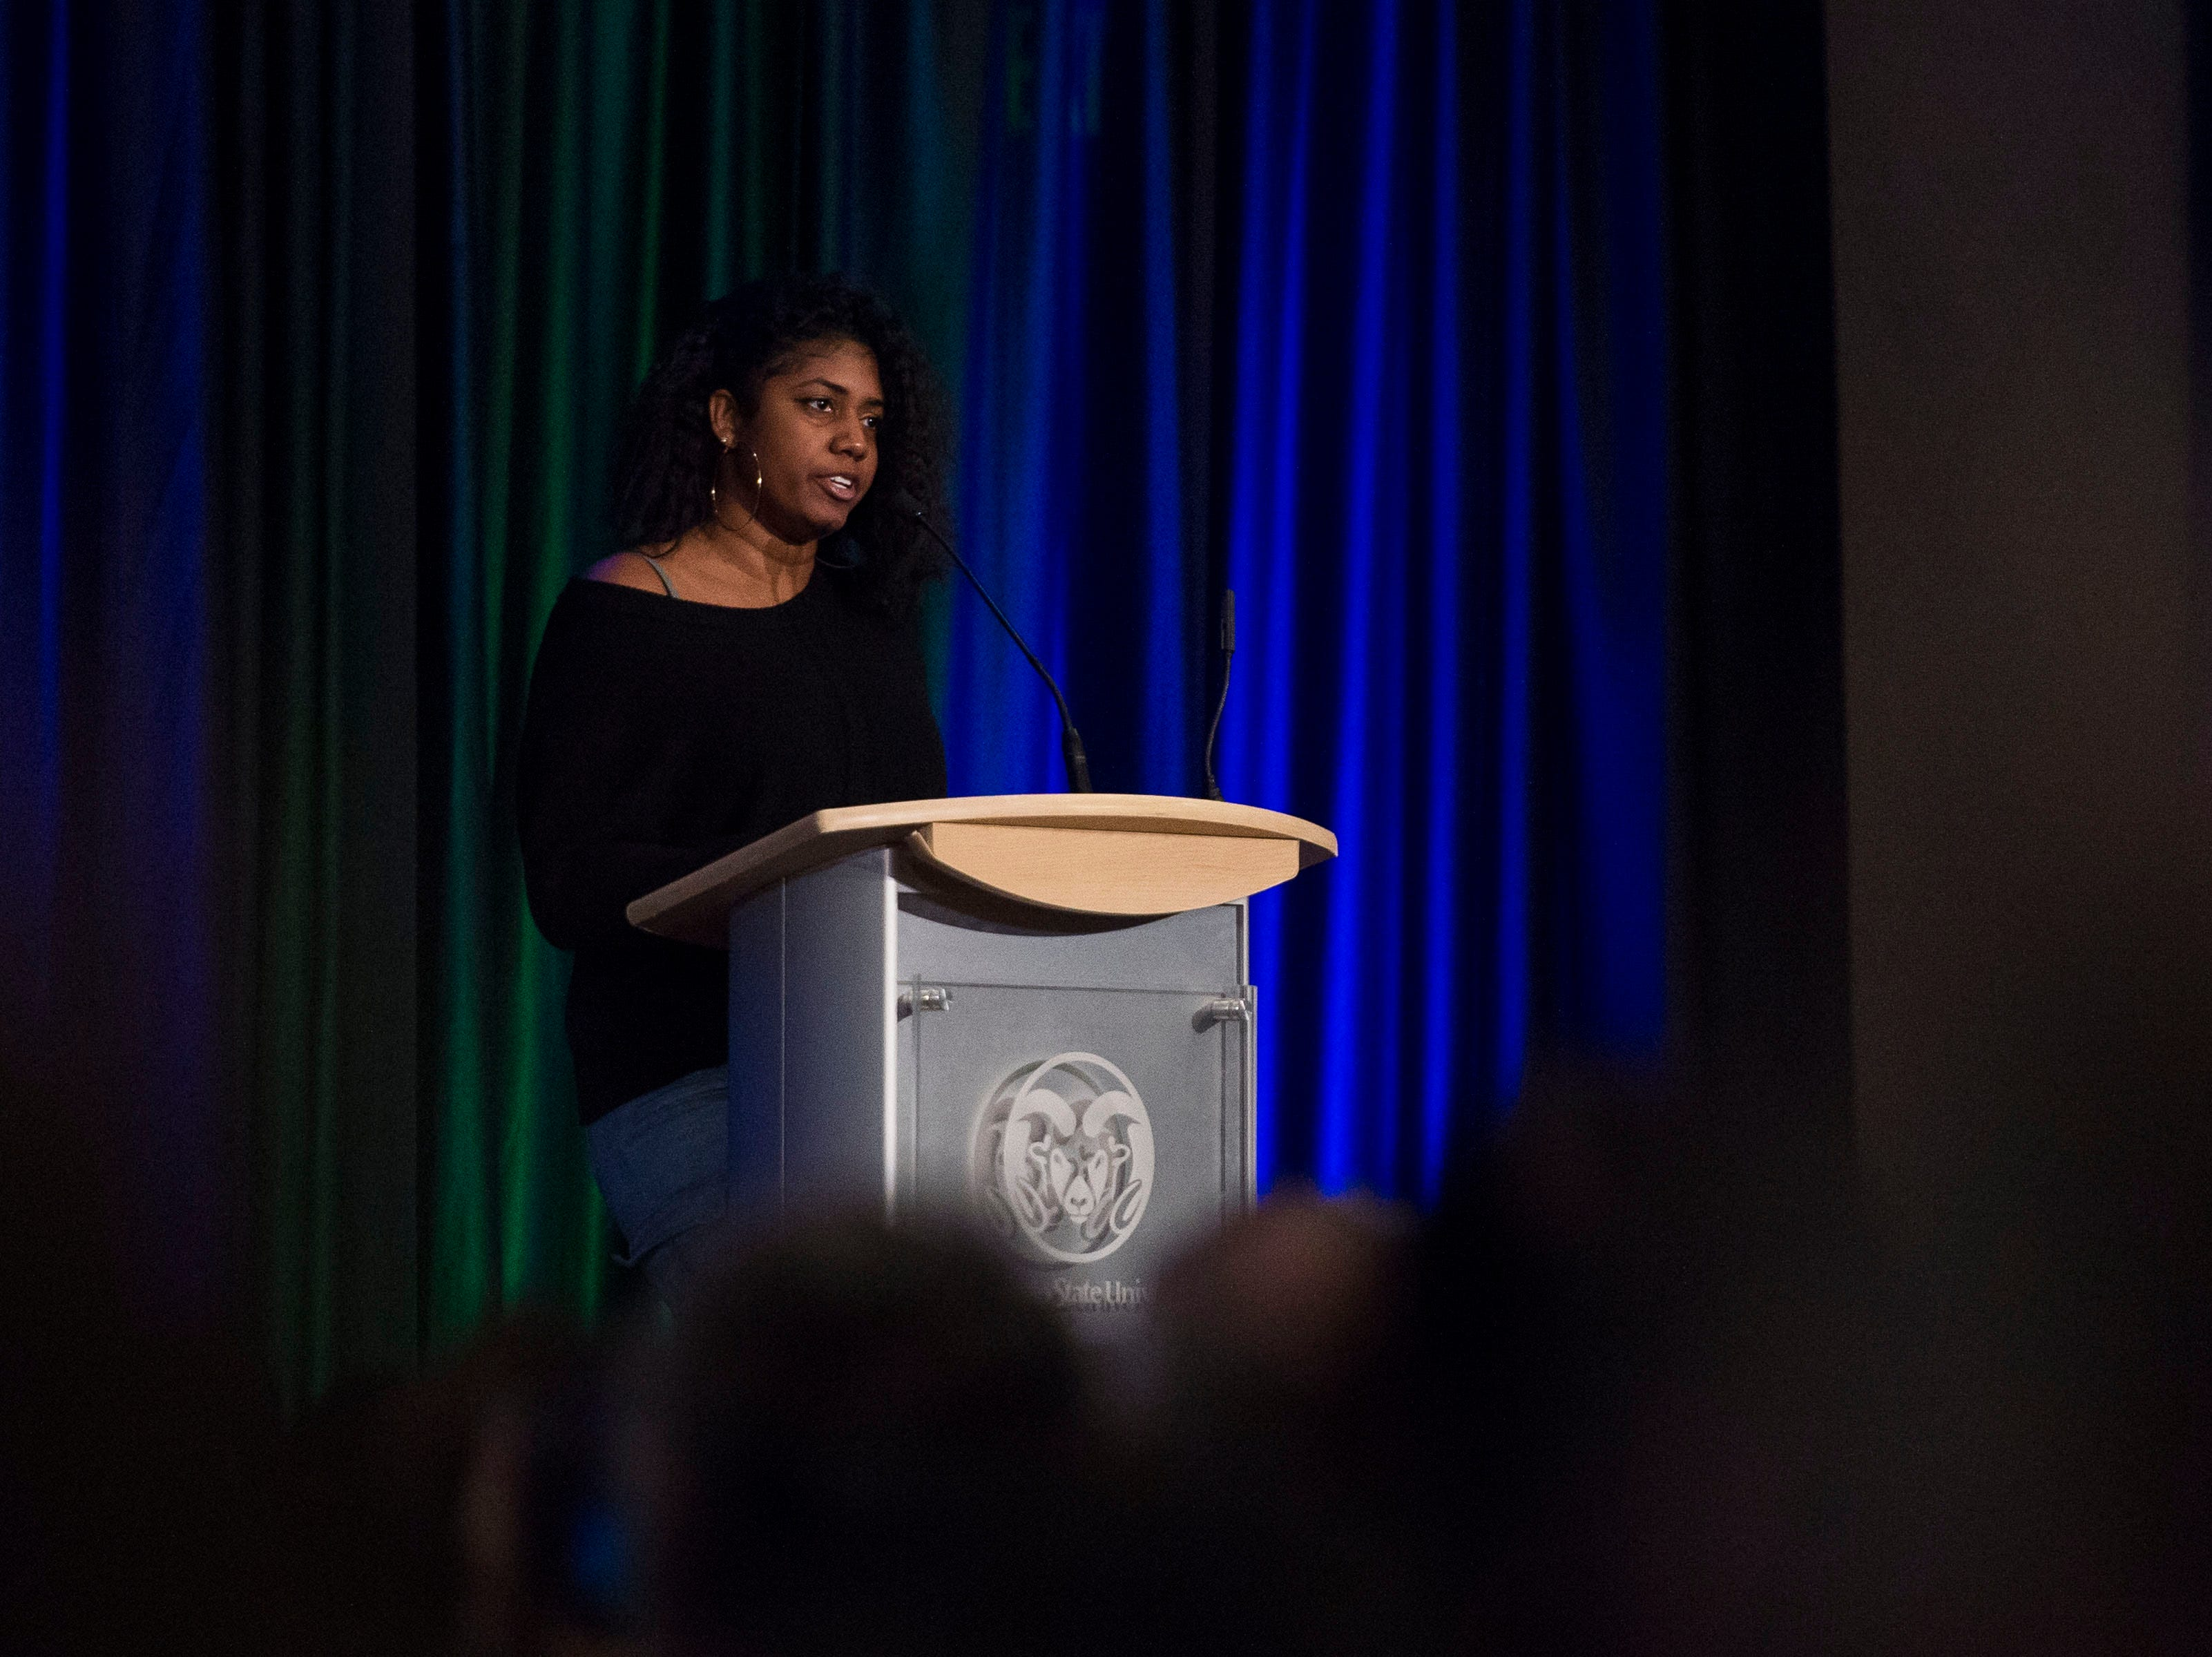 Spoken word poet Michelle Mendoza recites her poem during the Dr. Martin Luther King, Jr. March & Celebration on Monday, Jan. 21, 2019, at the Lory Student Center on the Colorado State University campus in Fort Collins, Colo.